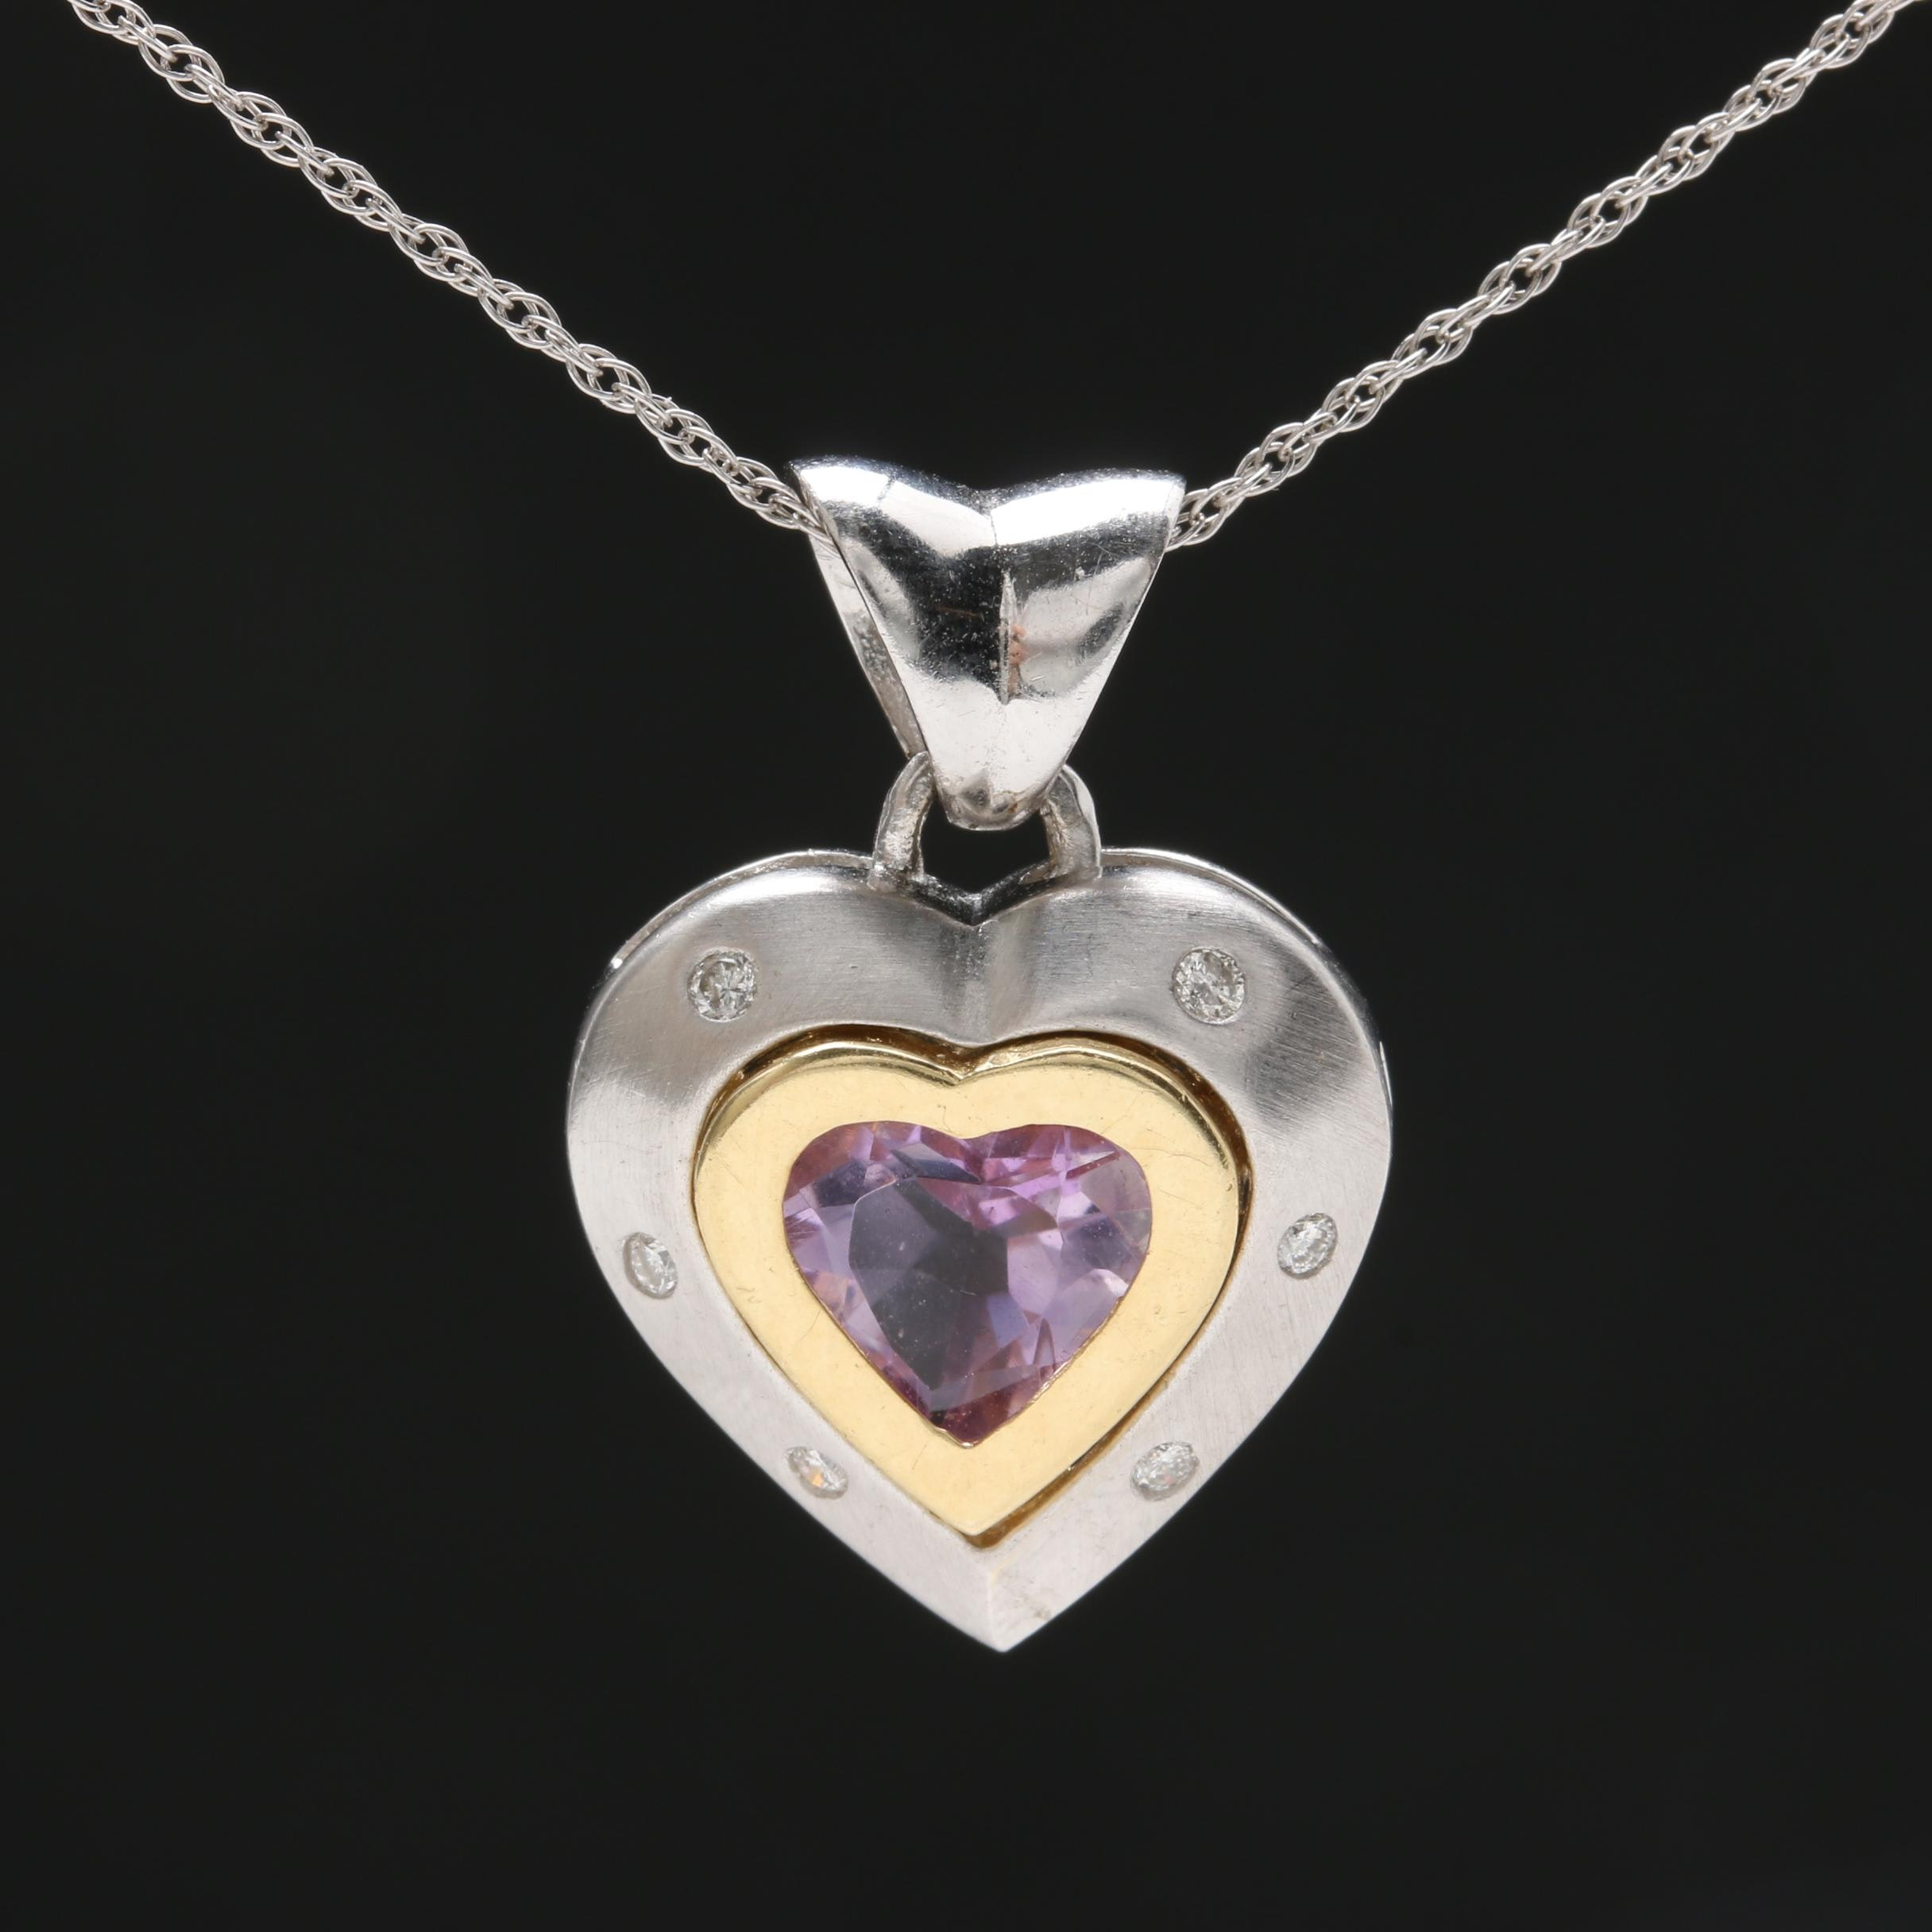 14K White Gold Amethyst and Diamond Heart Pendant Necklace